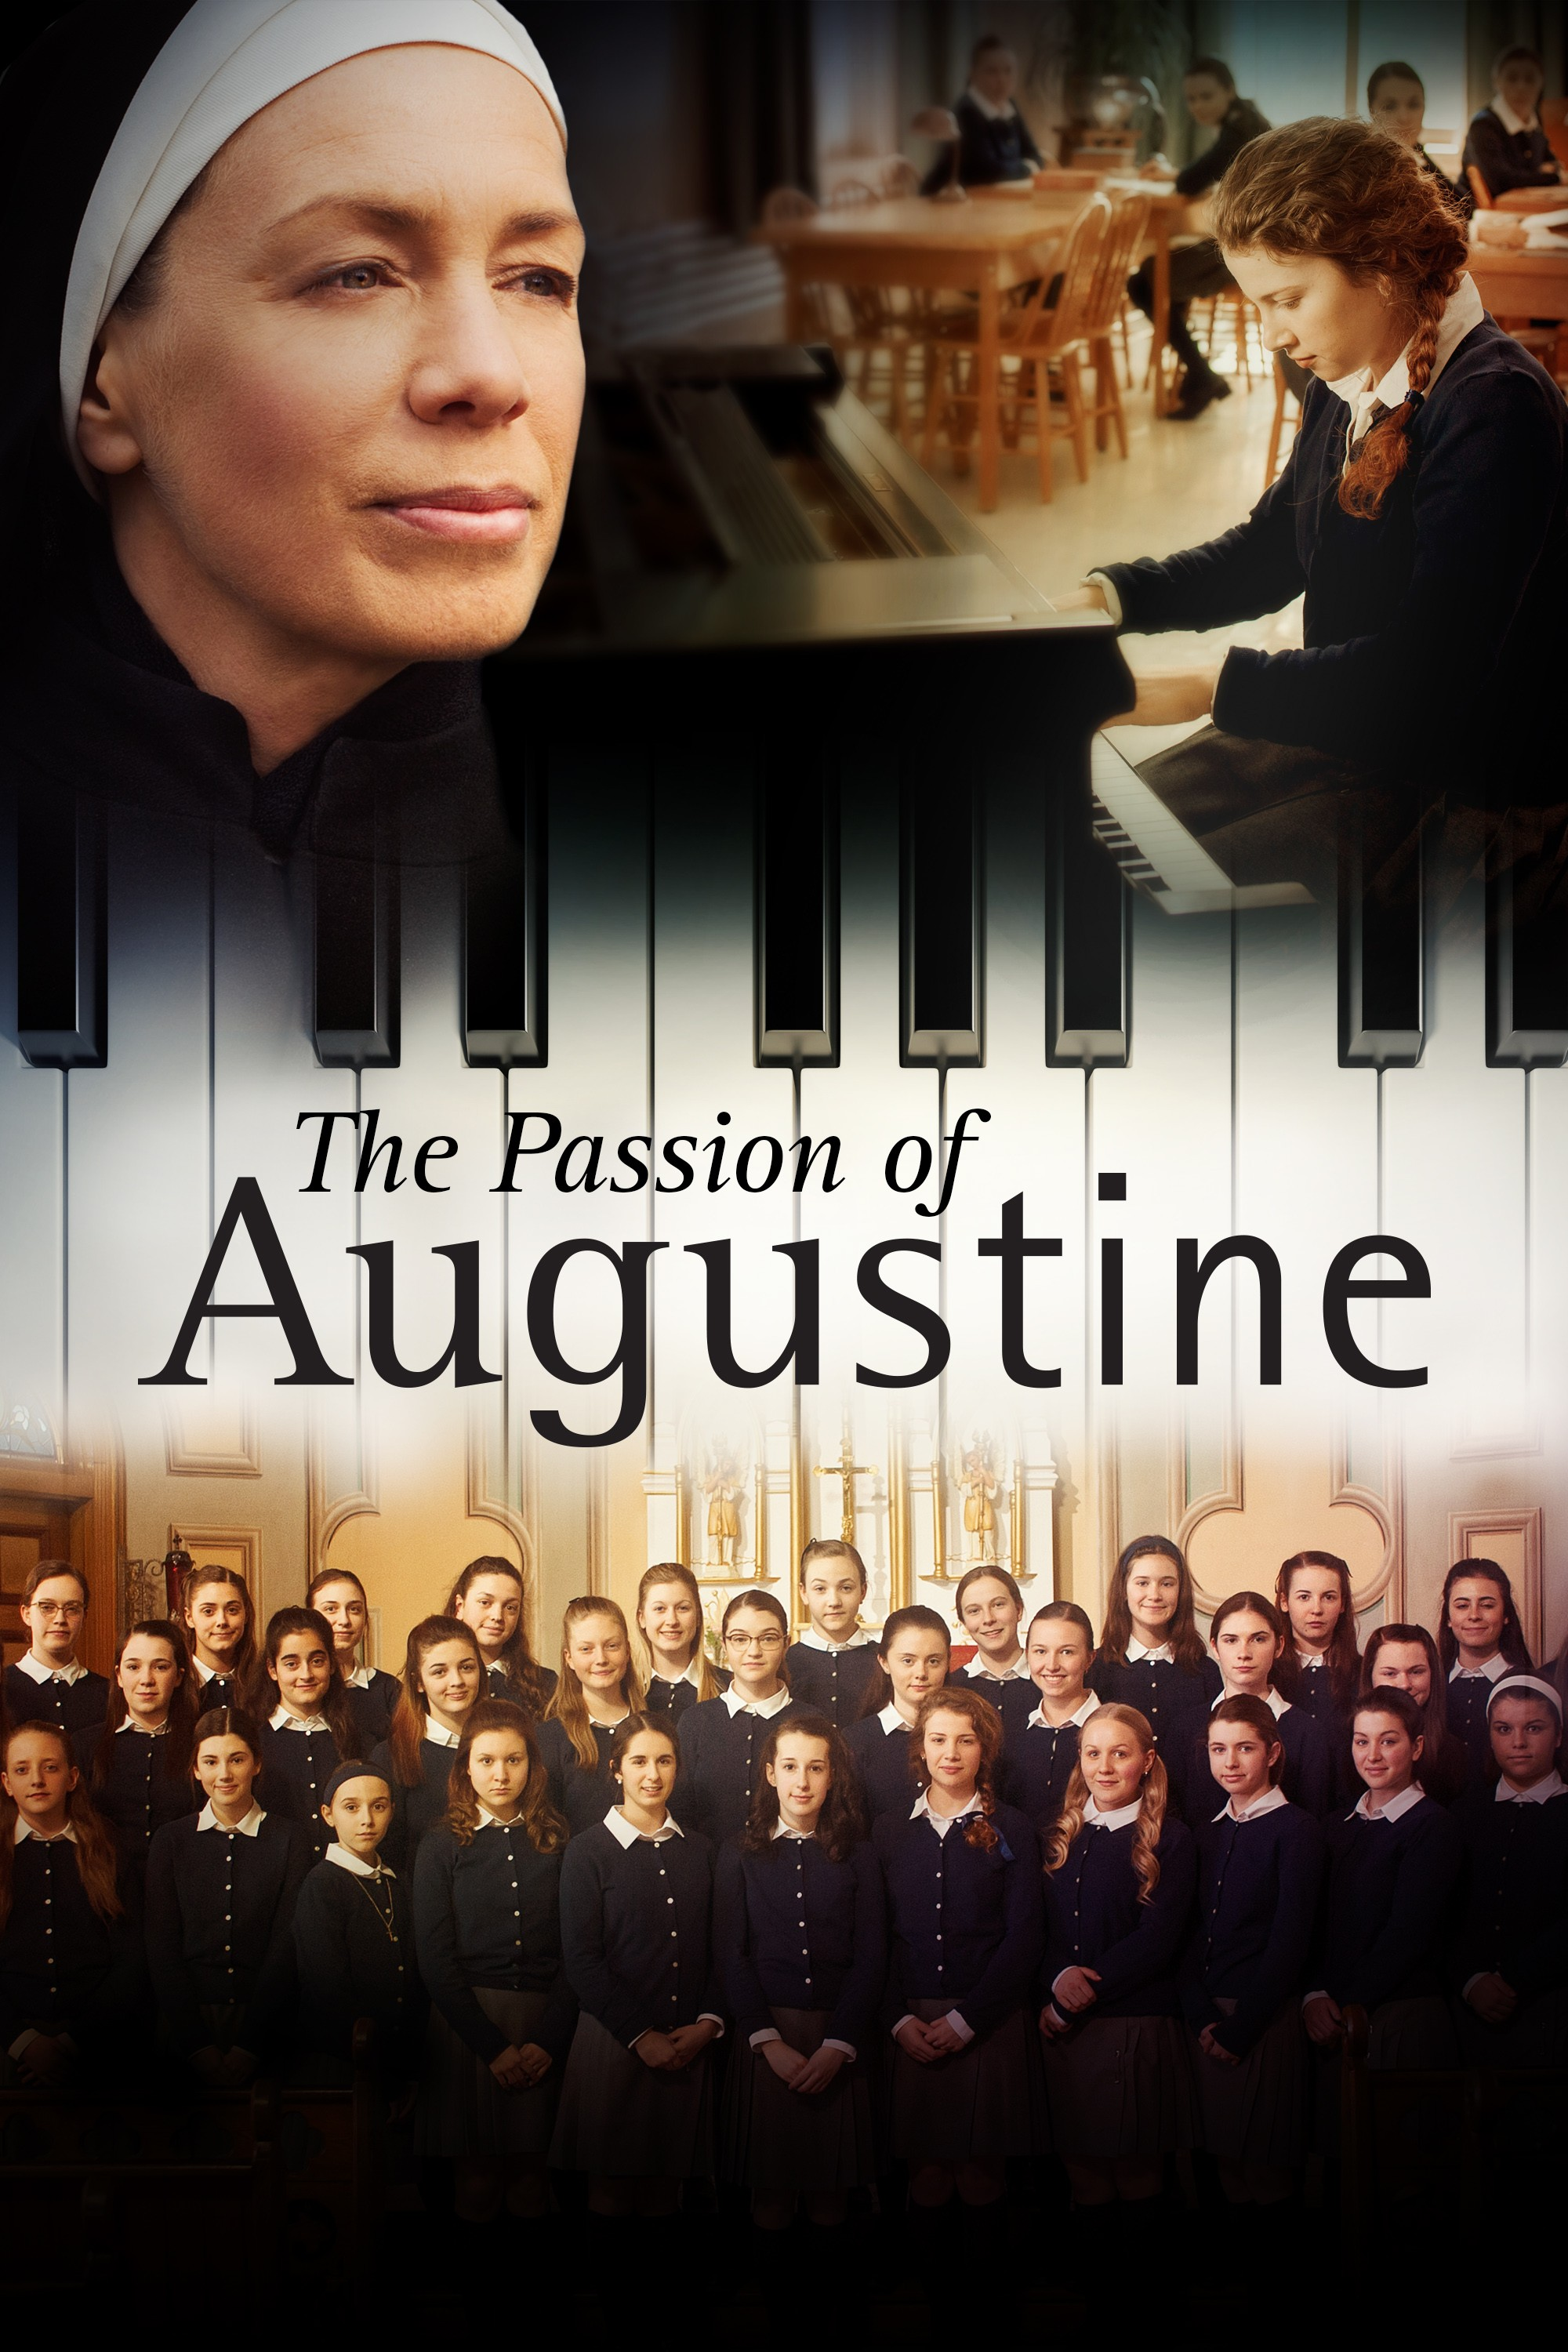 The Passion Of Augustine (La Passion D'augustine)